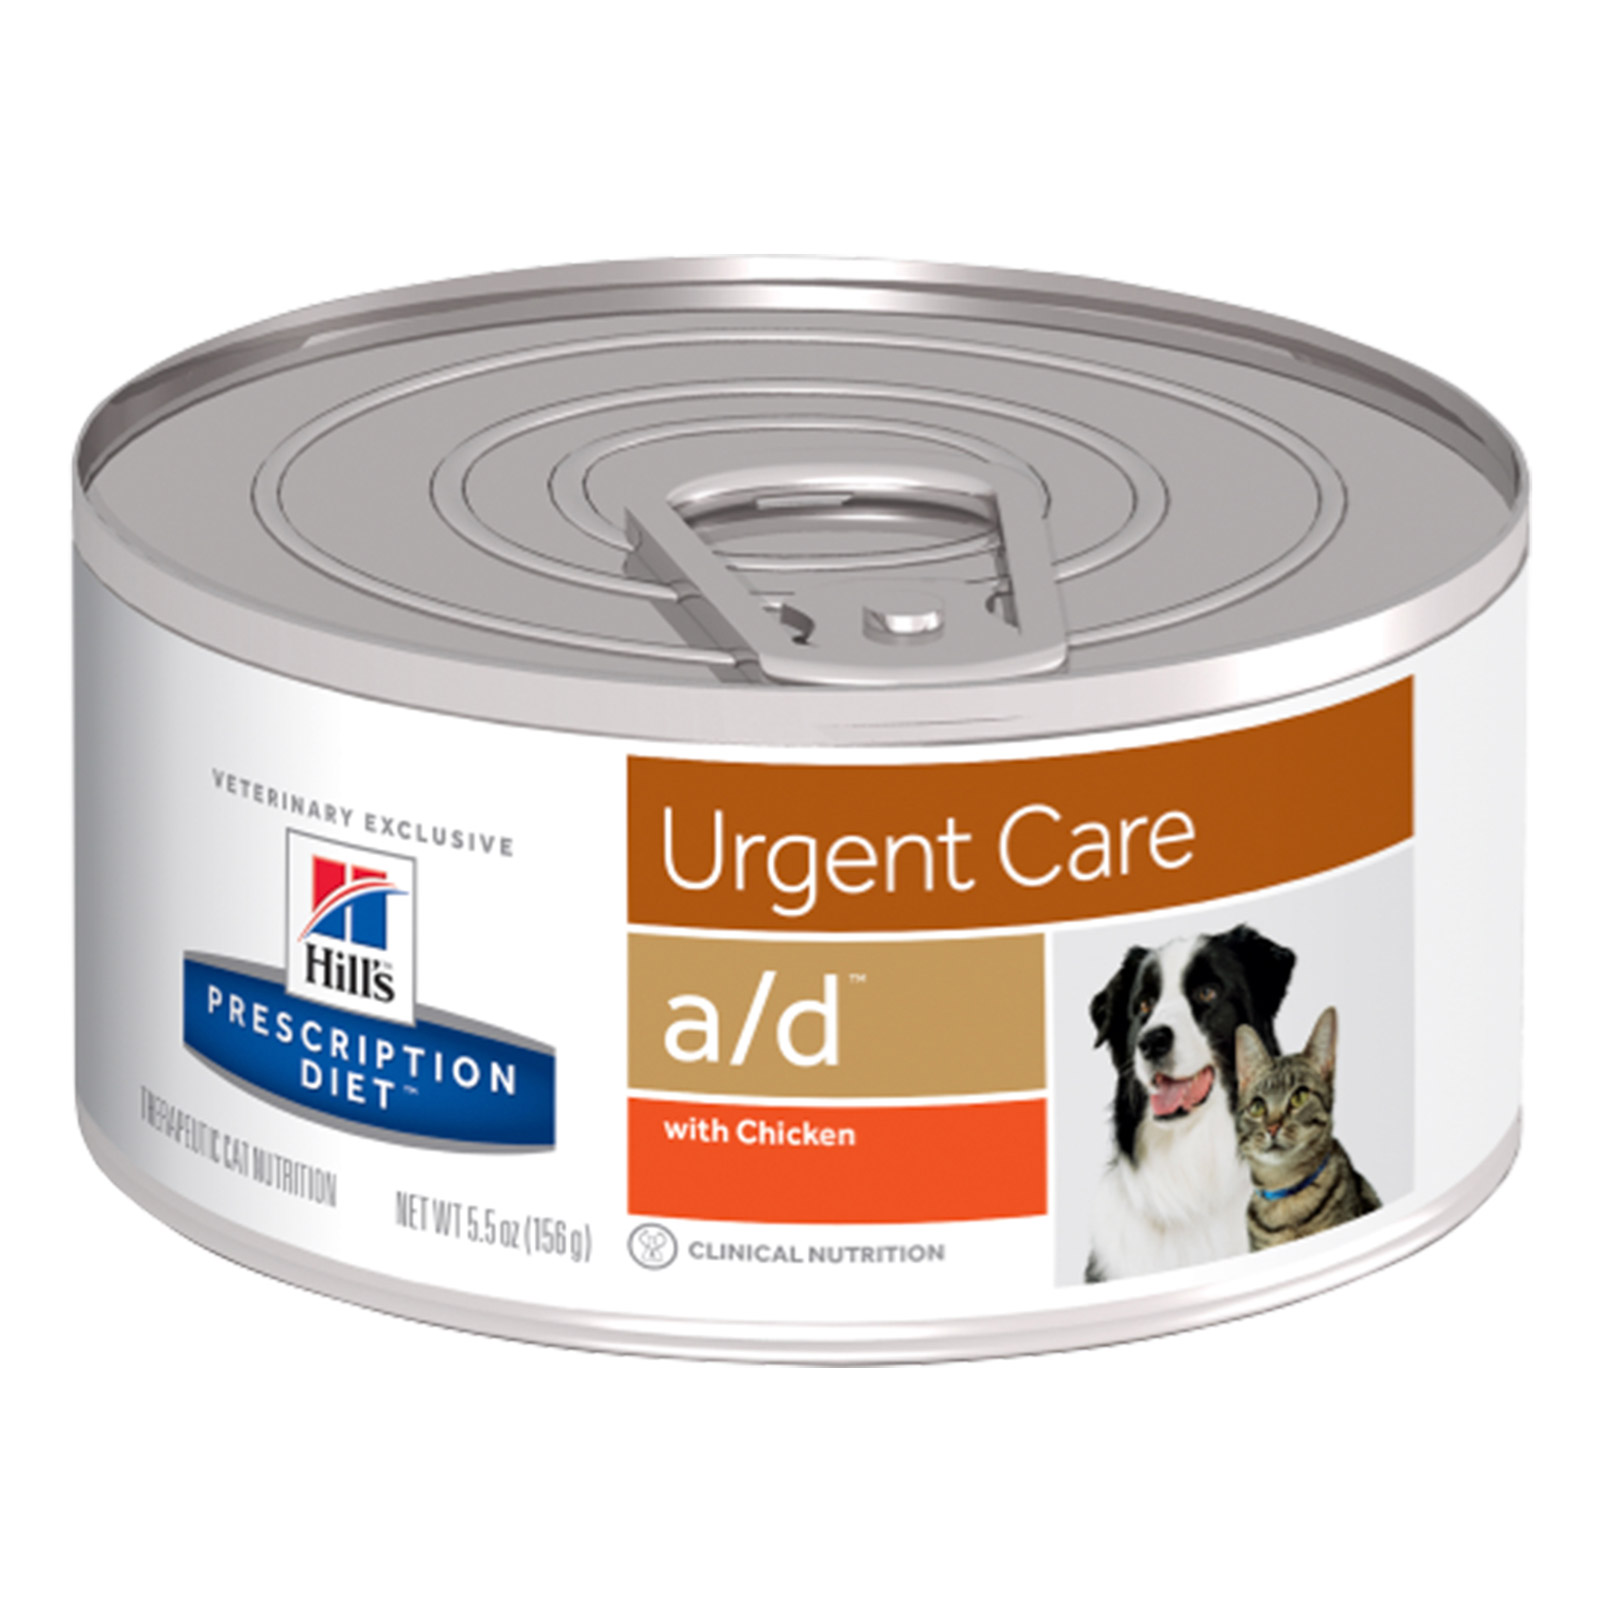 Hill's Prescription Diet a/d Urgent Care Feline Canned Dog Food 156 Gm